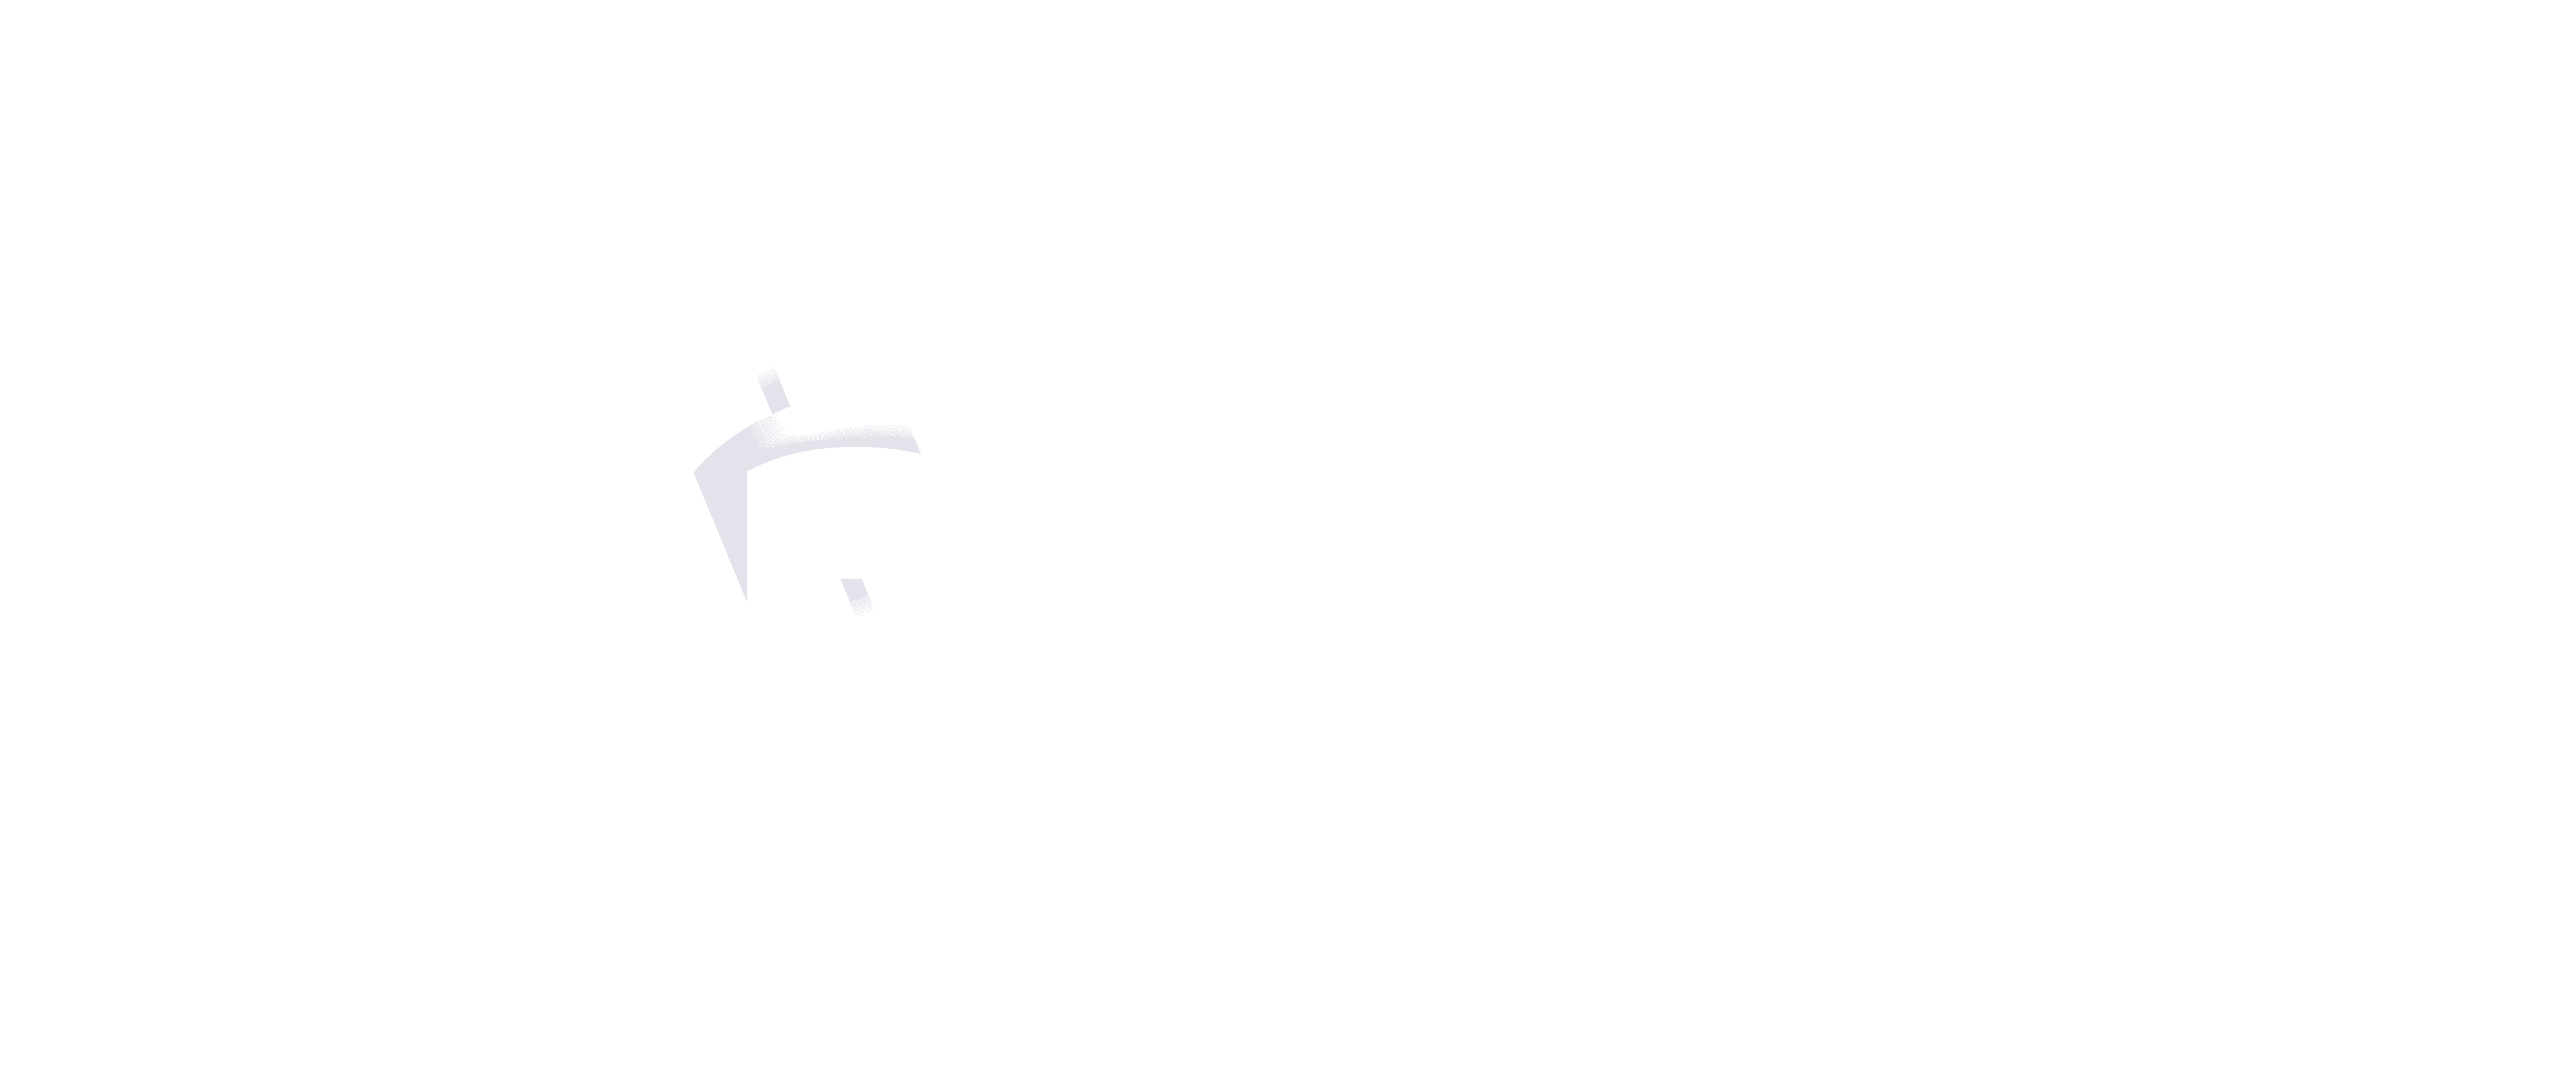 MobilePay_MP_RGB_NoTM_Logo+Type Horisontal White